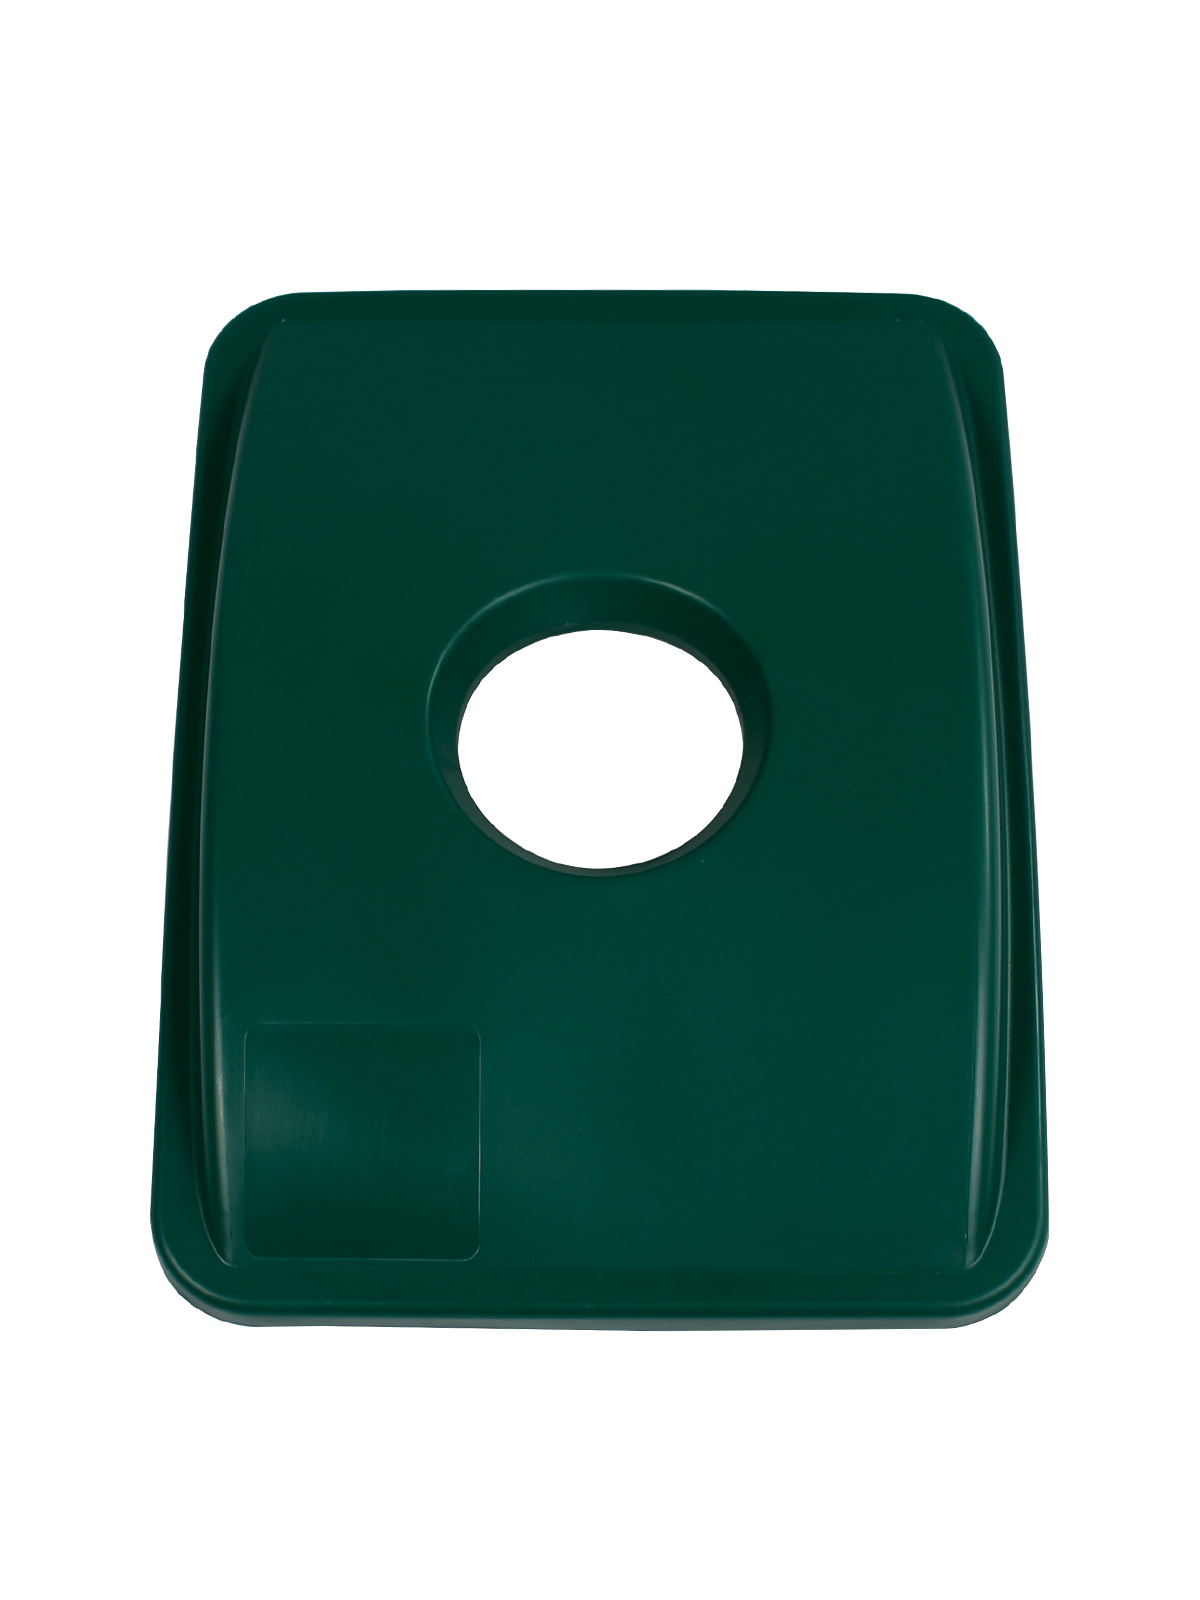 WASTE WATCHER XL - Lid - Circle - Dark Green